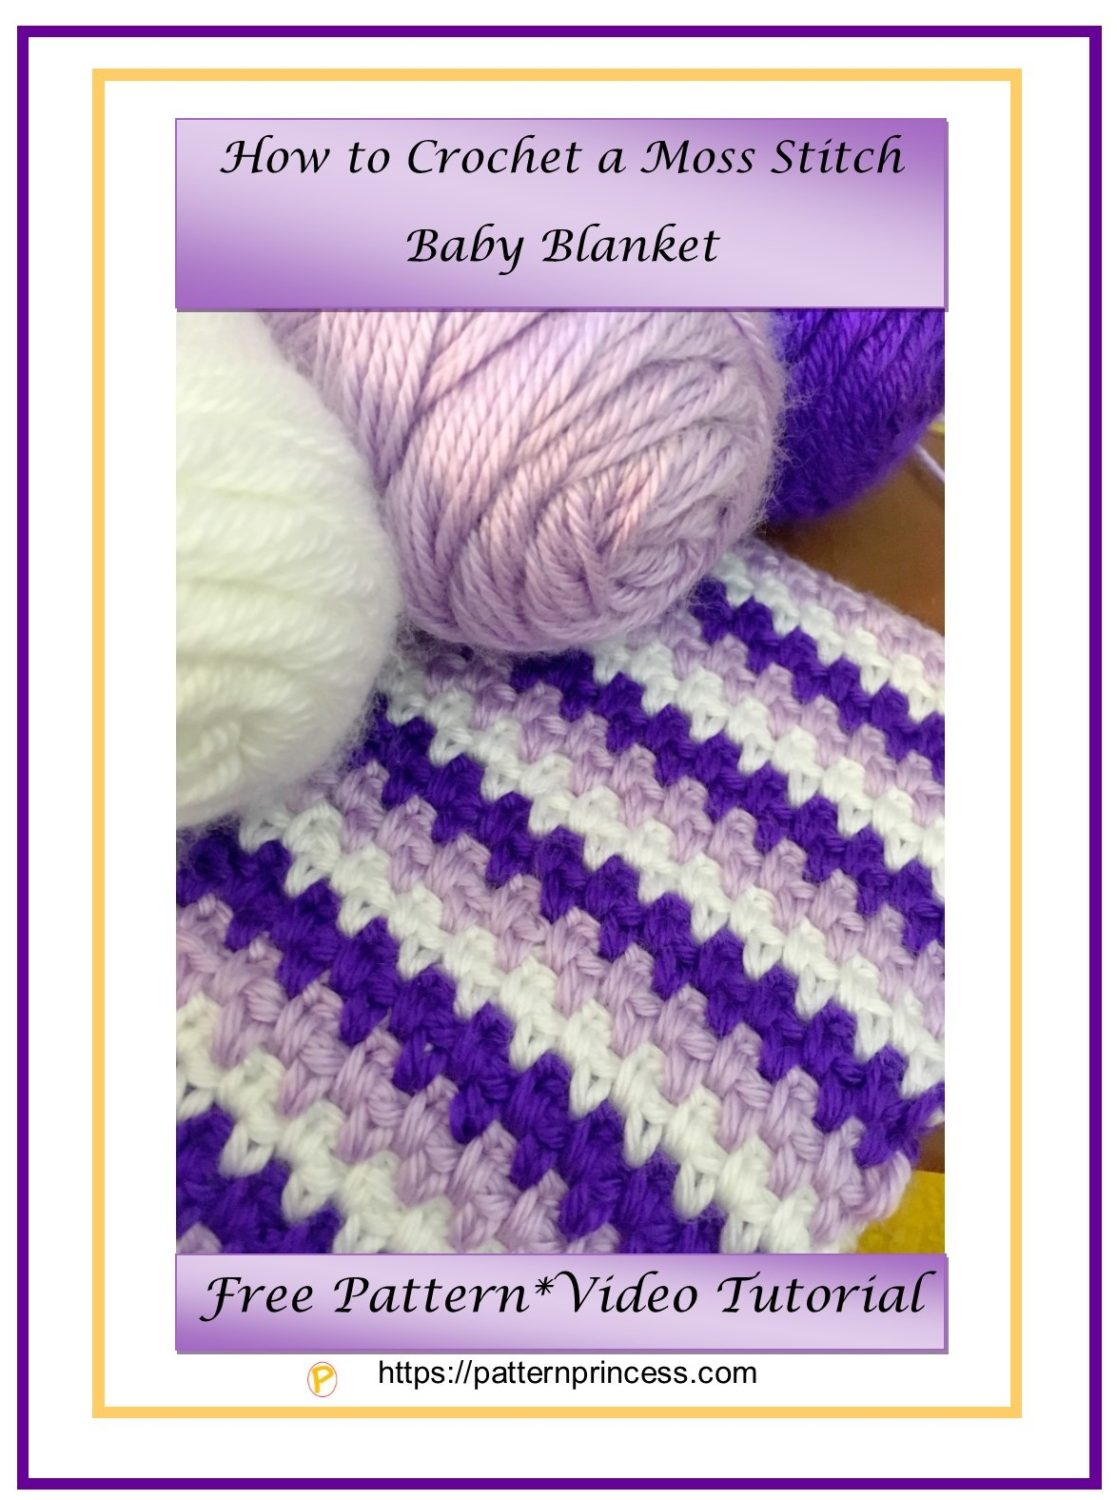 How to Crochet a Moss Stitch Baby Blanket 1